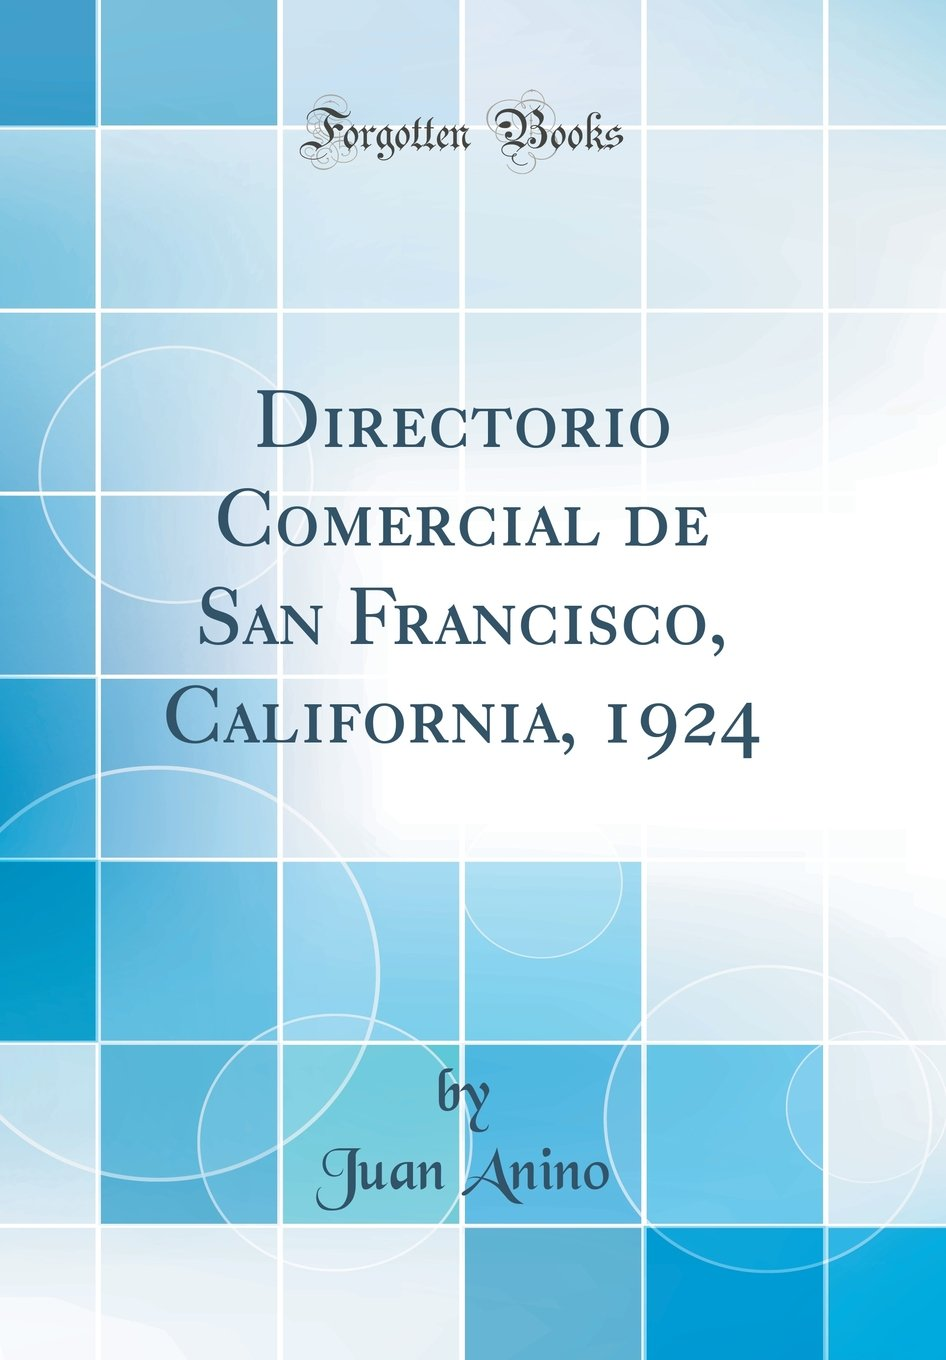 Directorio Comercial de San Francisco, California, 1924 (Classic Reprint) (Spanish Edition) (Spanish) Hardcover – February 17, 2018